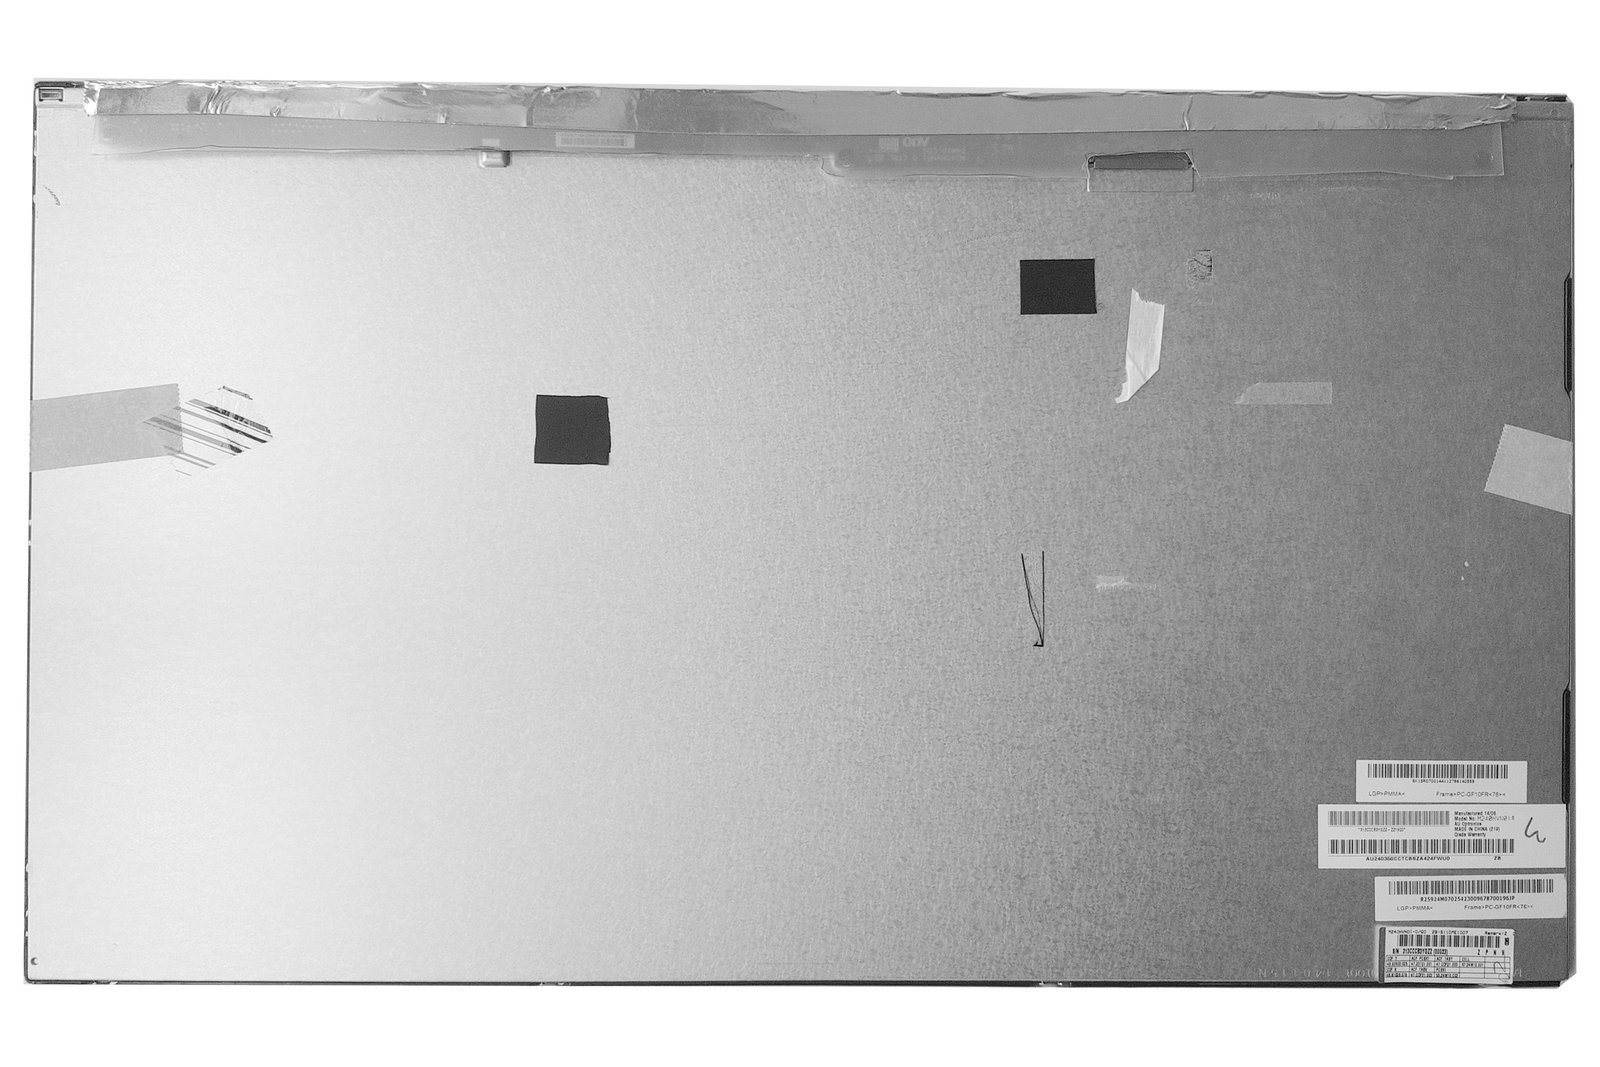 Display Panel Screen AUO 24' M240HVN01.0 1920 x 1080